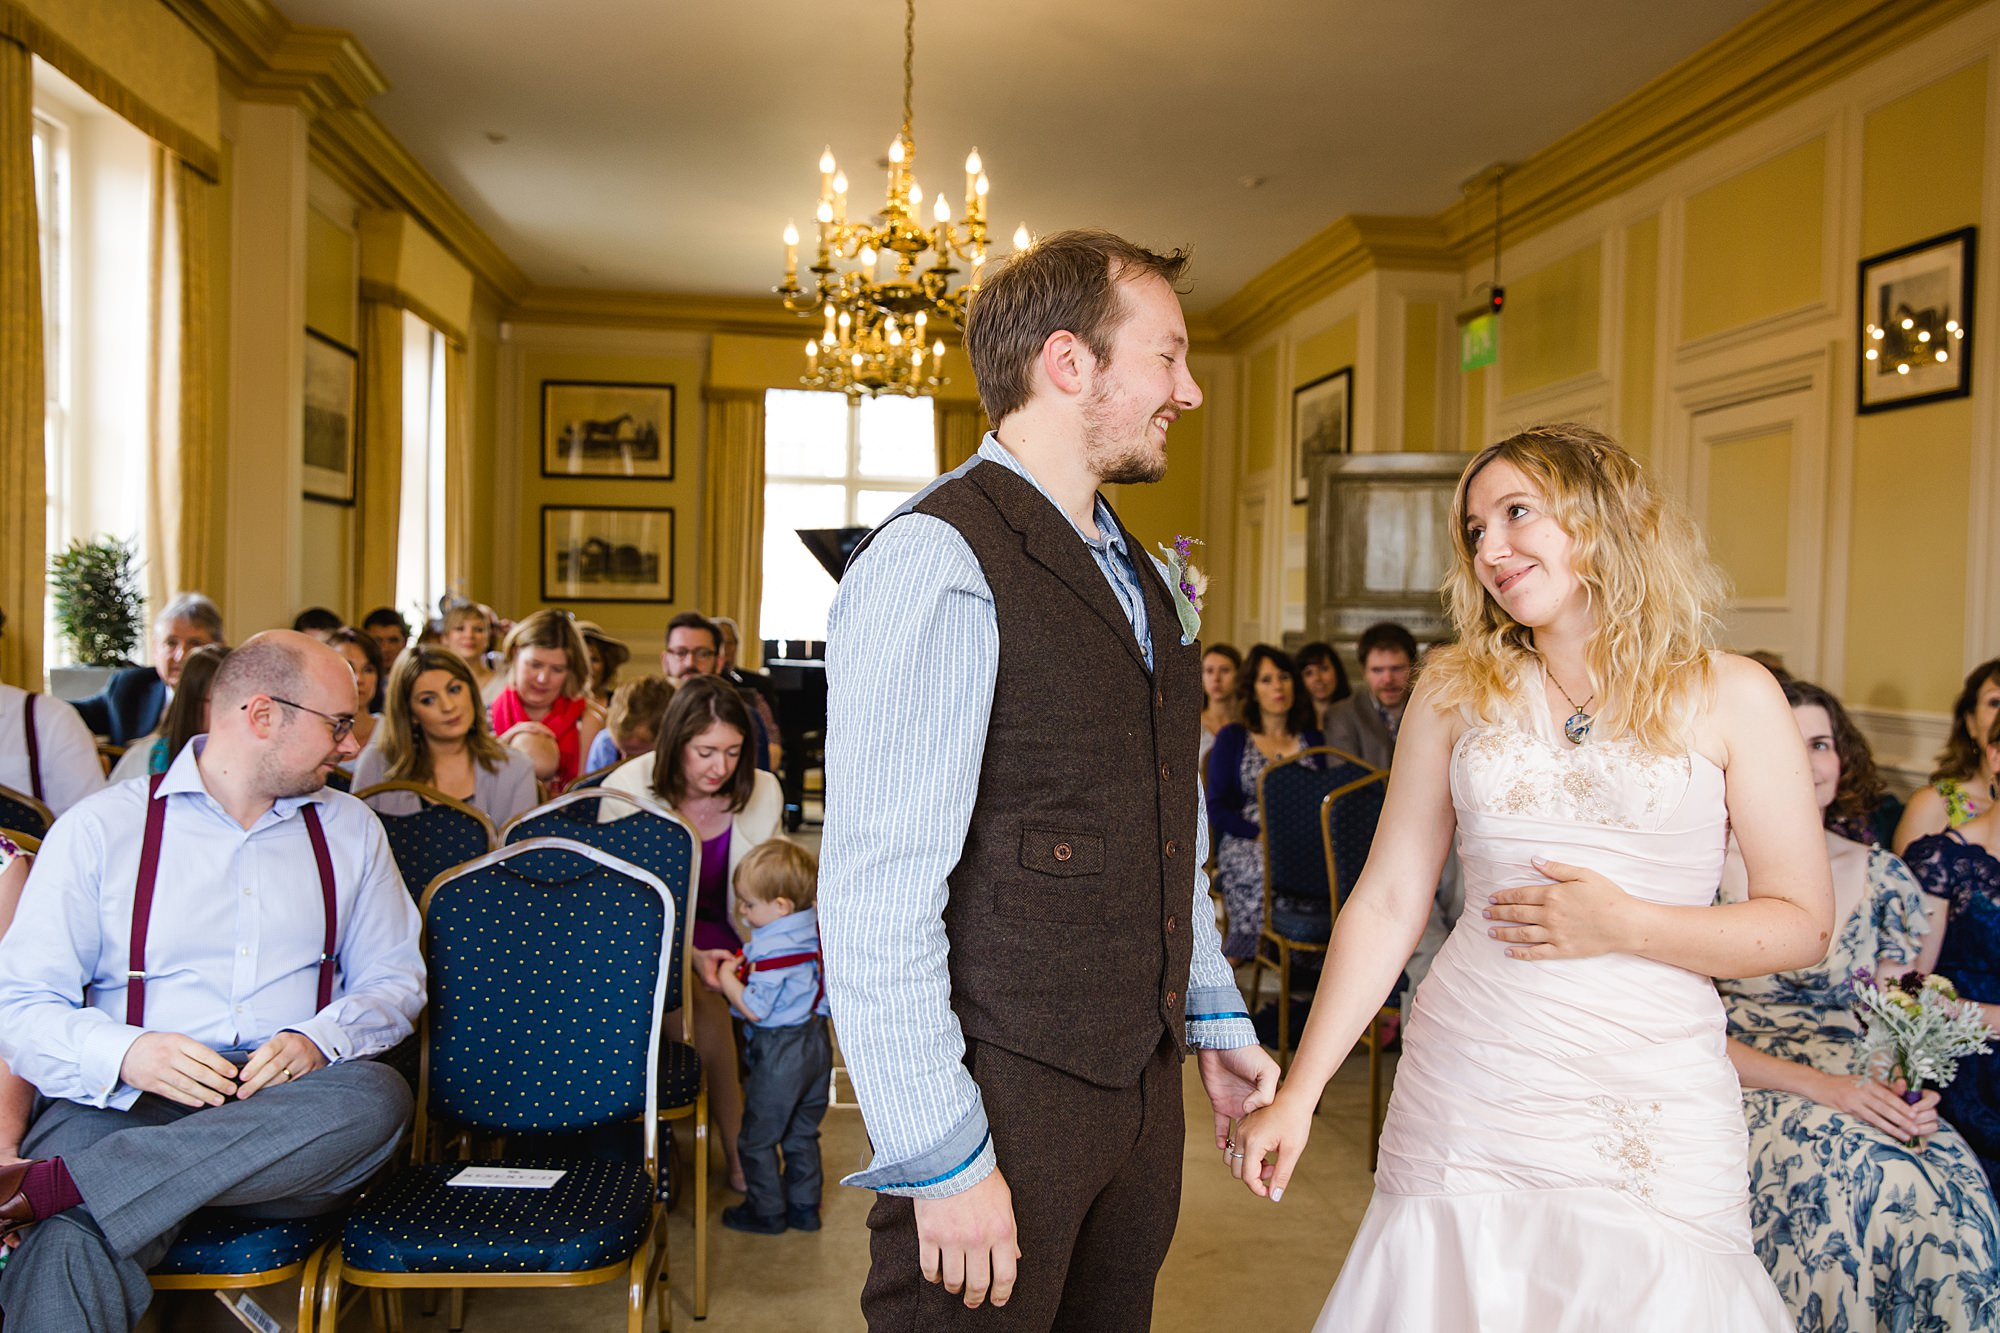 Fun village hall wedding portrait of bride and groom during wedding ceremony at Edes House